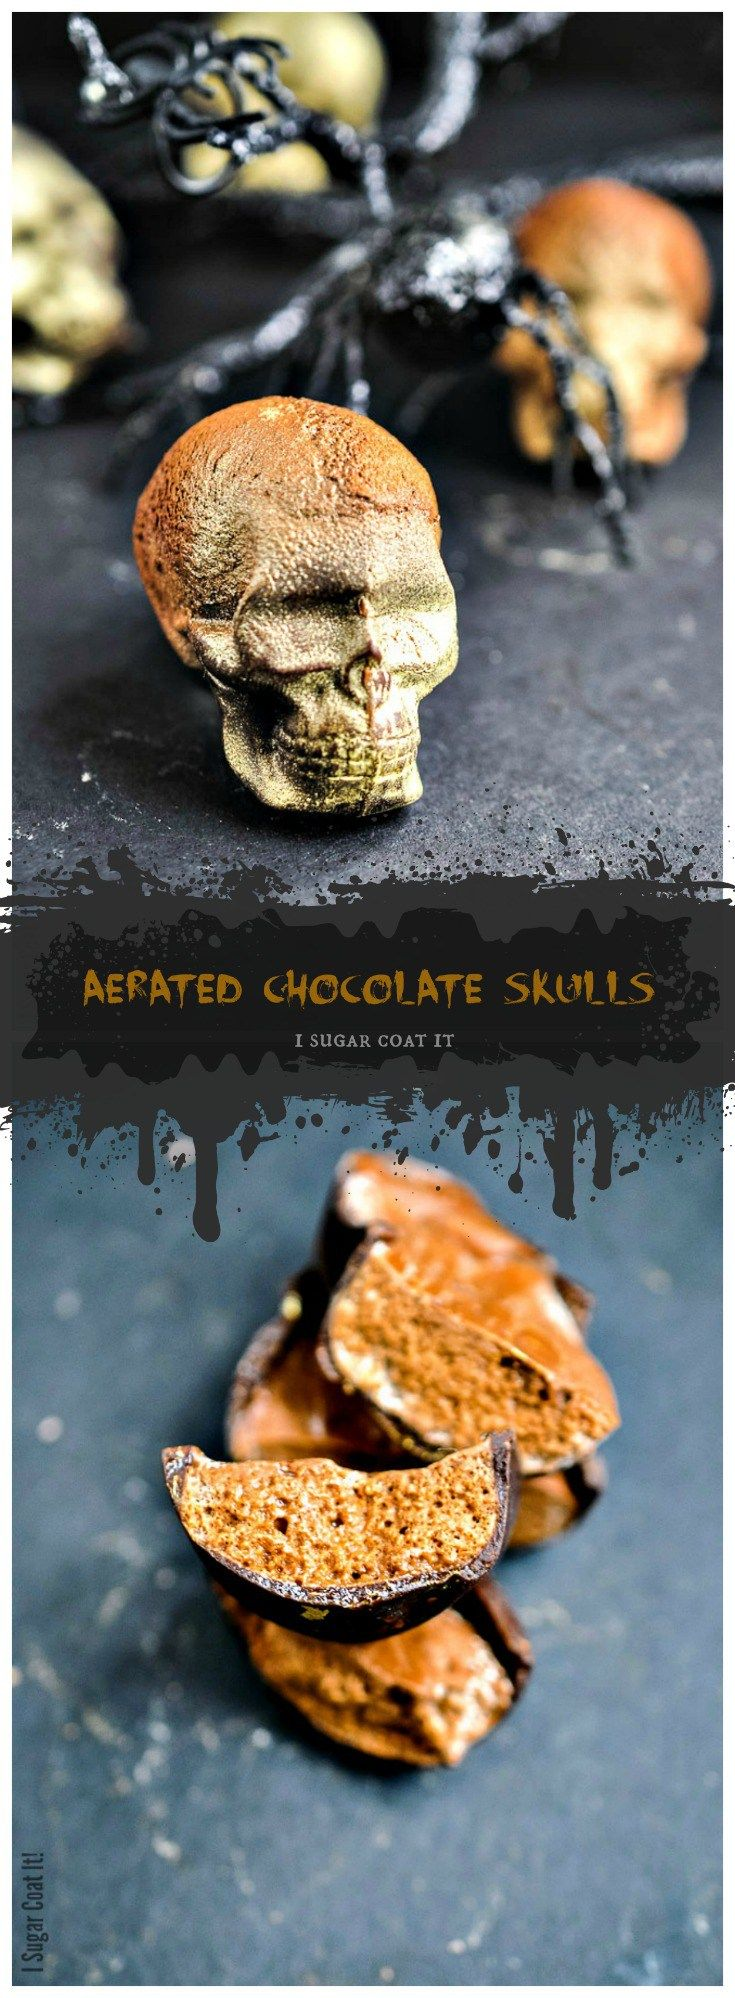 These fully edible Aerated Milk Chocolate Skulls filled with bubbly clouds of espresso milk chocolate make a fun adult halloween treat.